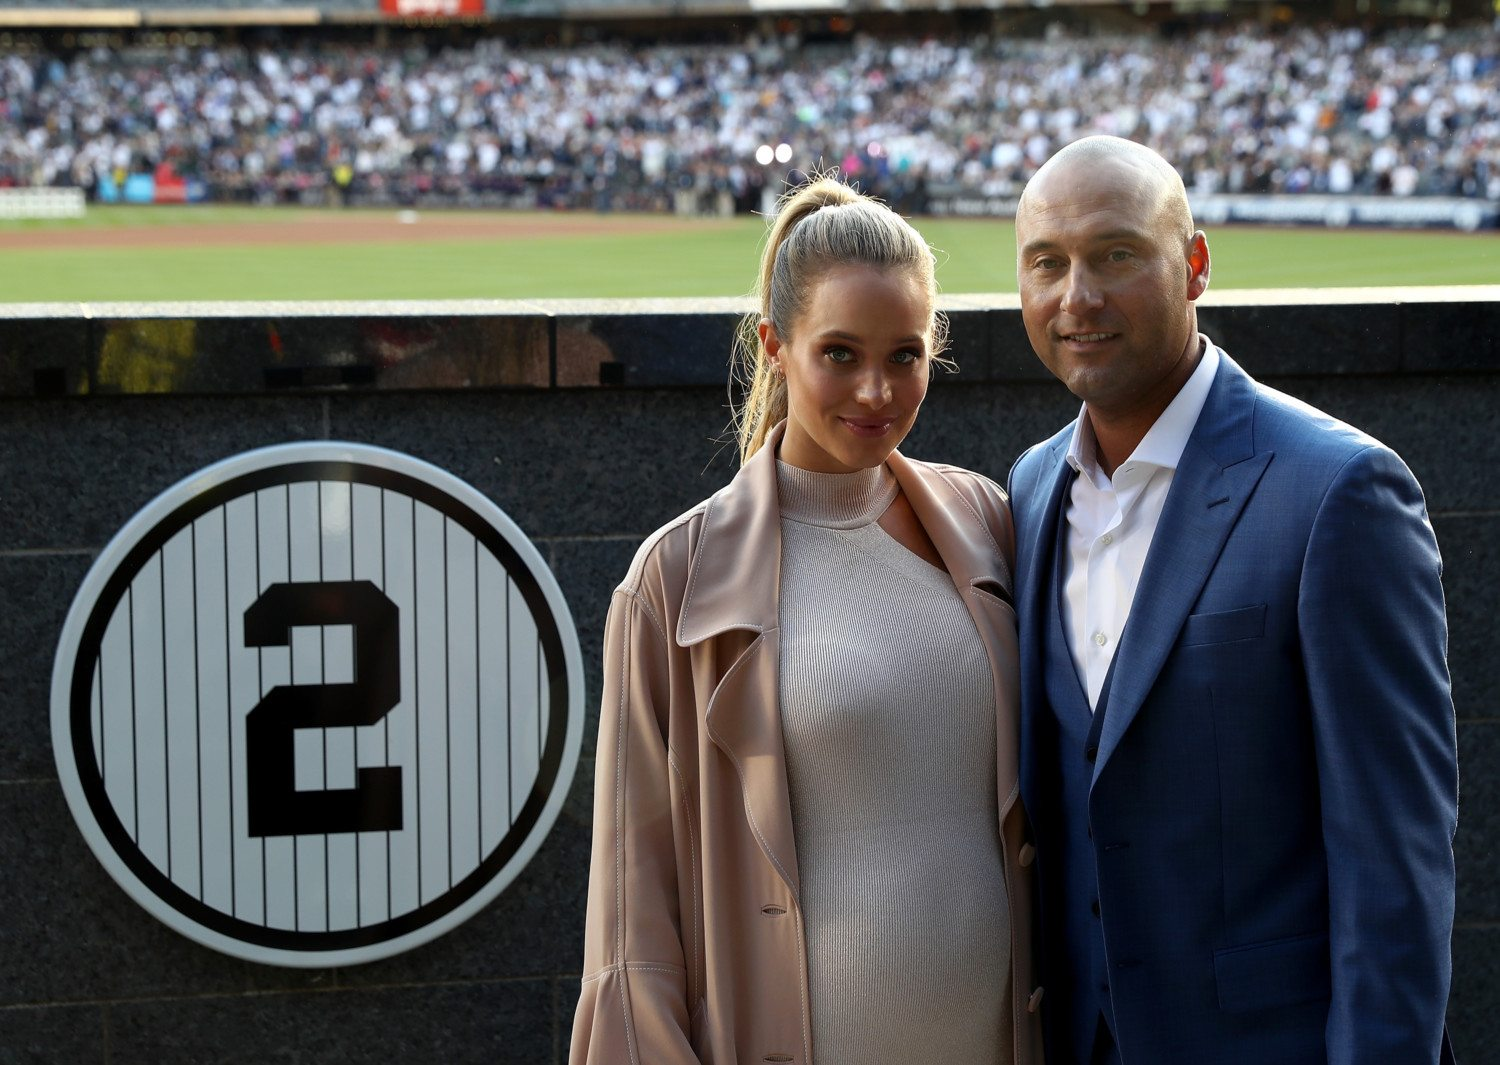 Derek Jeter photo